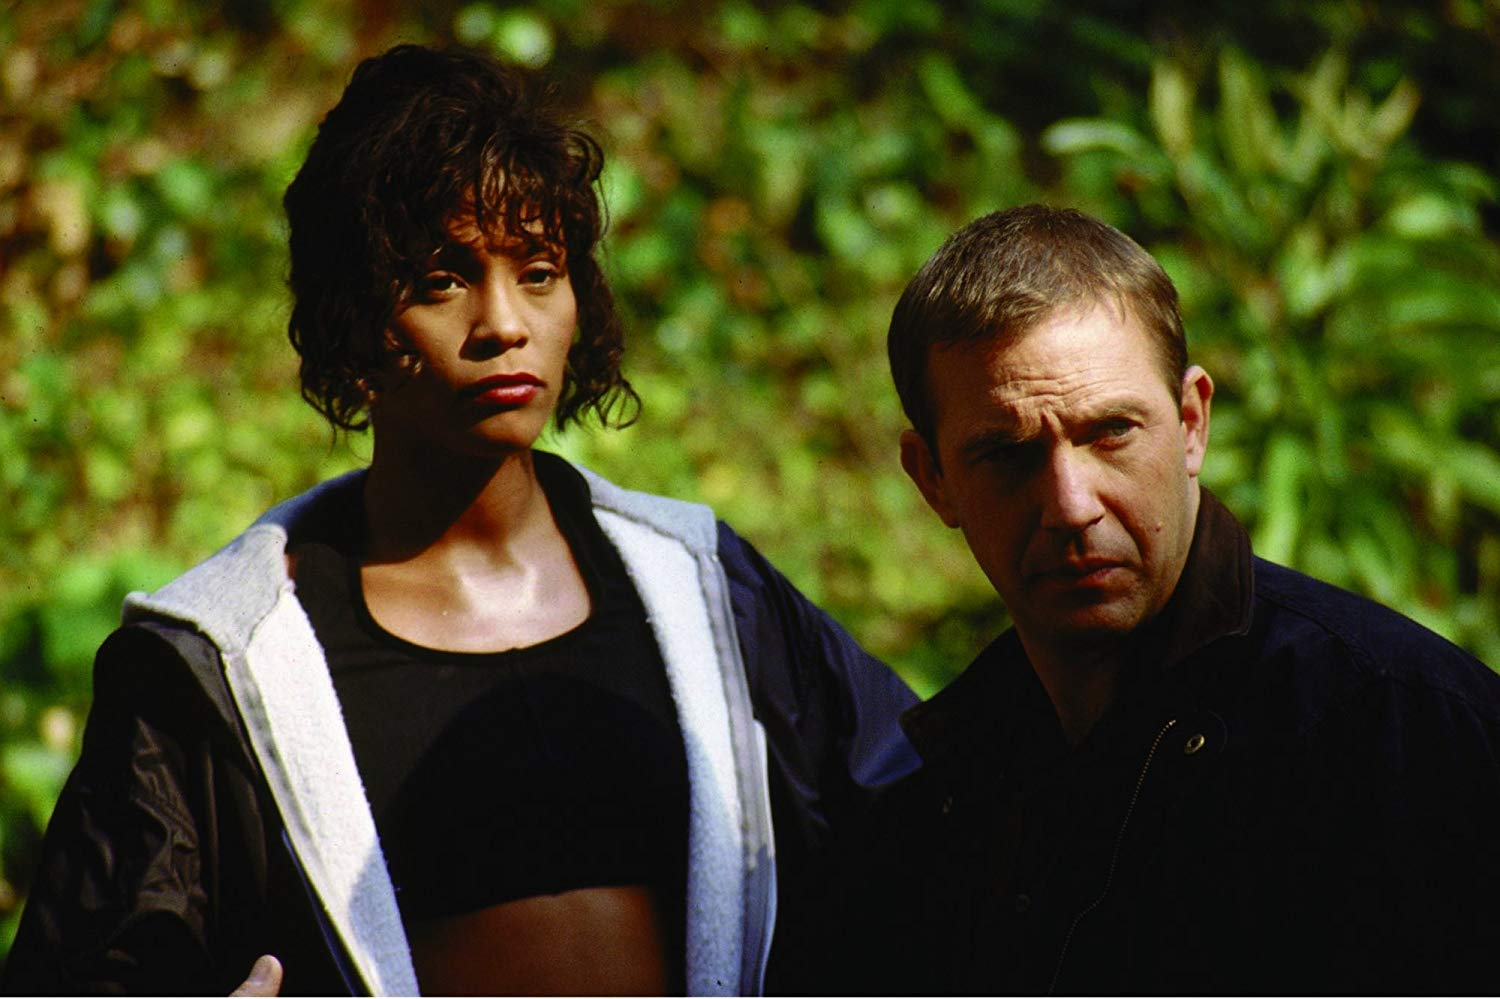 11. The Bodyguard (1992)